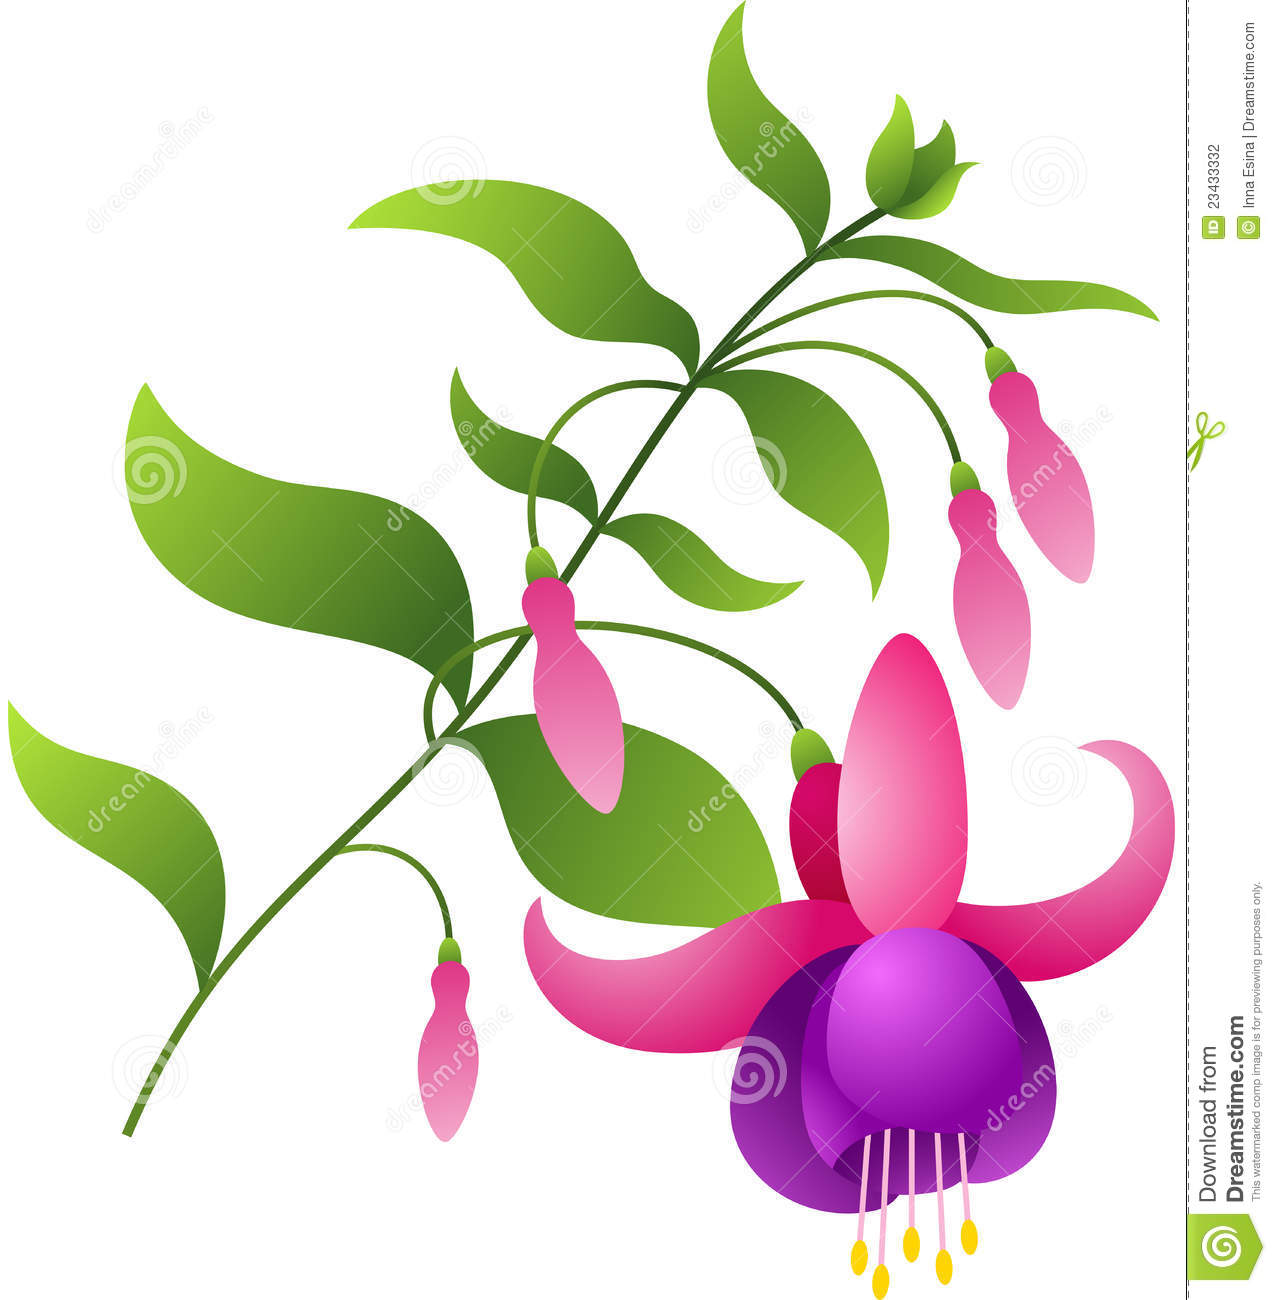 Yellow Flower clipart fuschia flower Fuschia clipart Fuchsia collection Flower